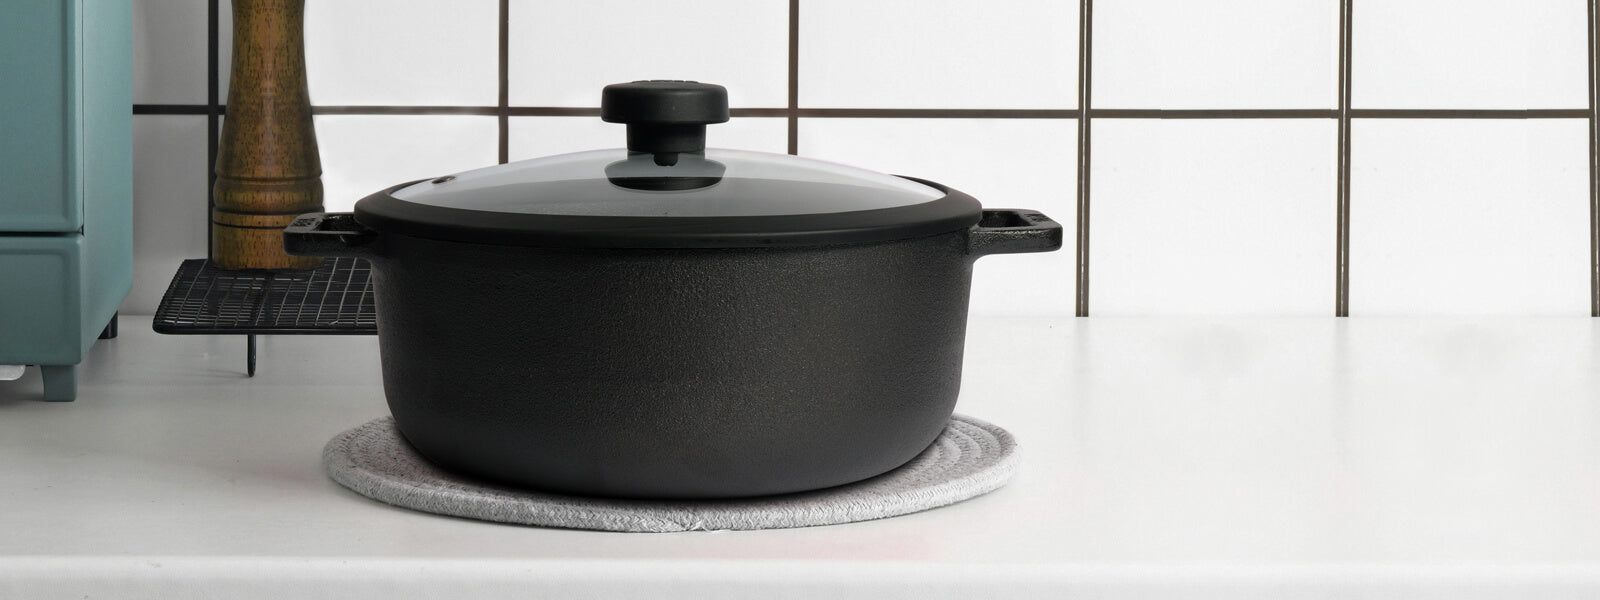 Uncoated Pre-Seasoned Cast Iron Cookware